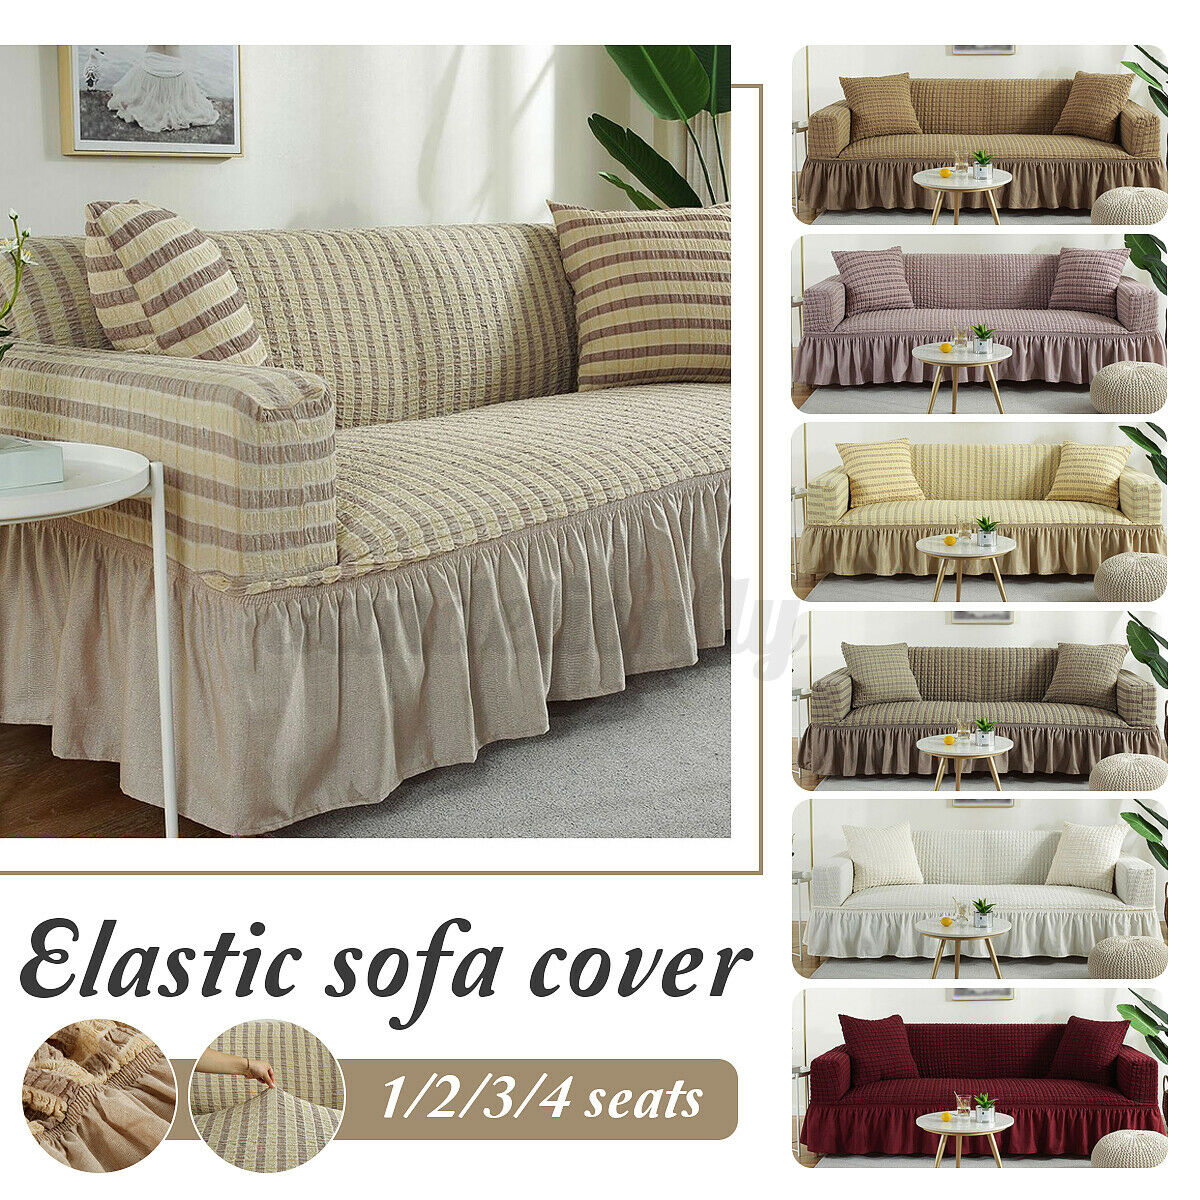 Elastic Slipcover Sofa Chair Covers Couch Cover Protector Skirt 9/9/9/9  Seats US